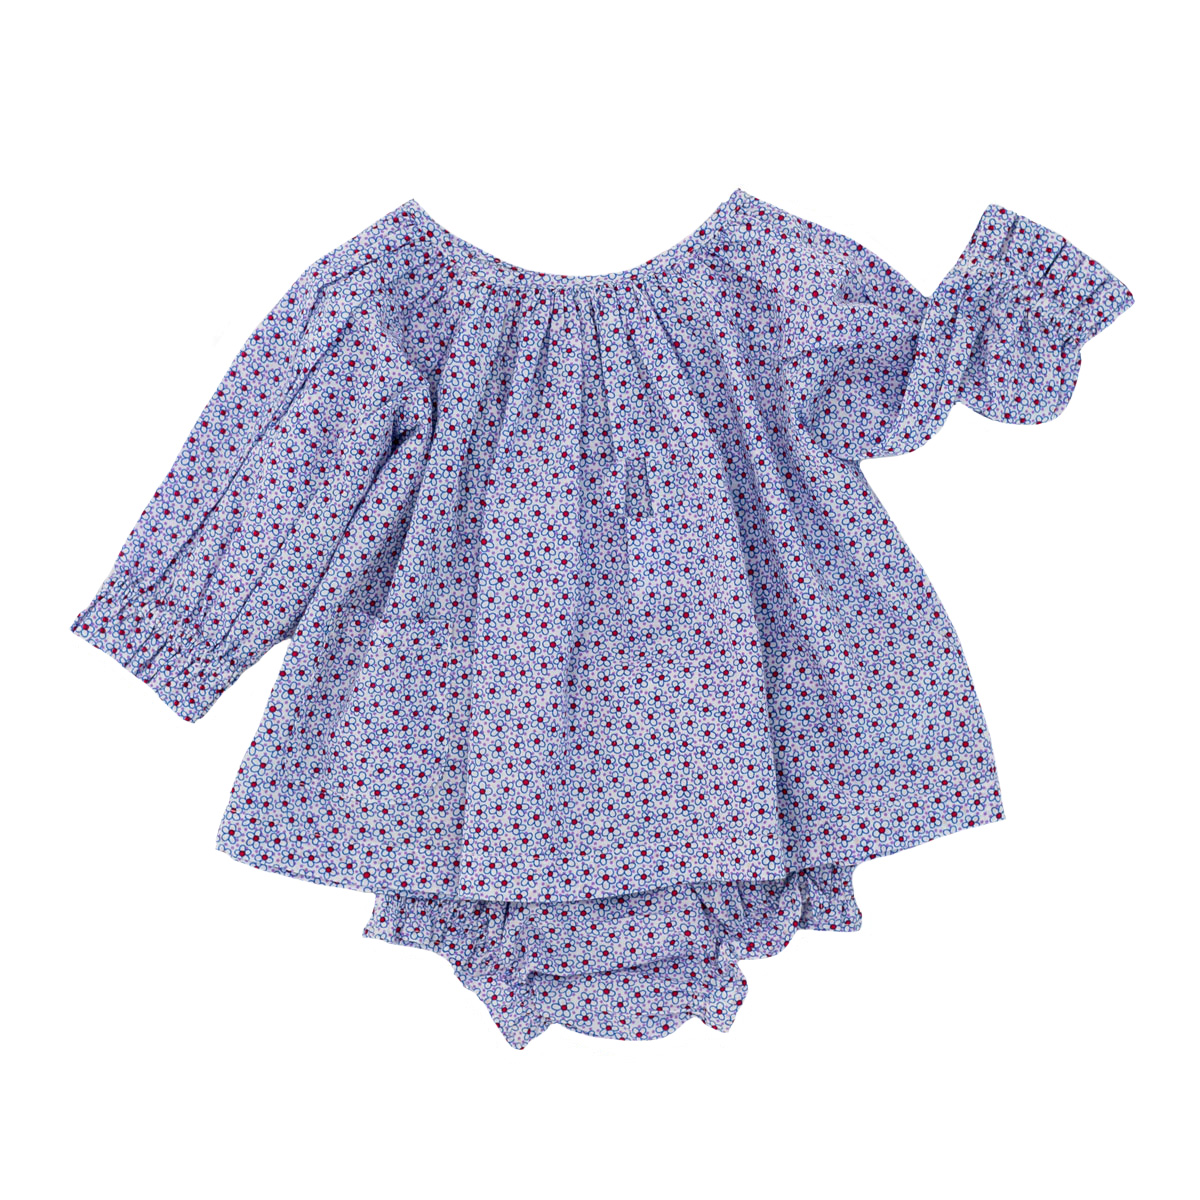 Madras Made Sydney Long Sleeve Top & Bloomer Set in Bluebell